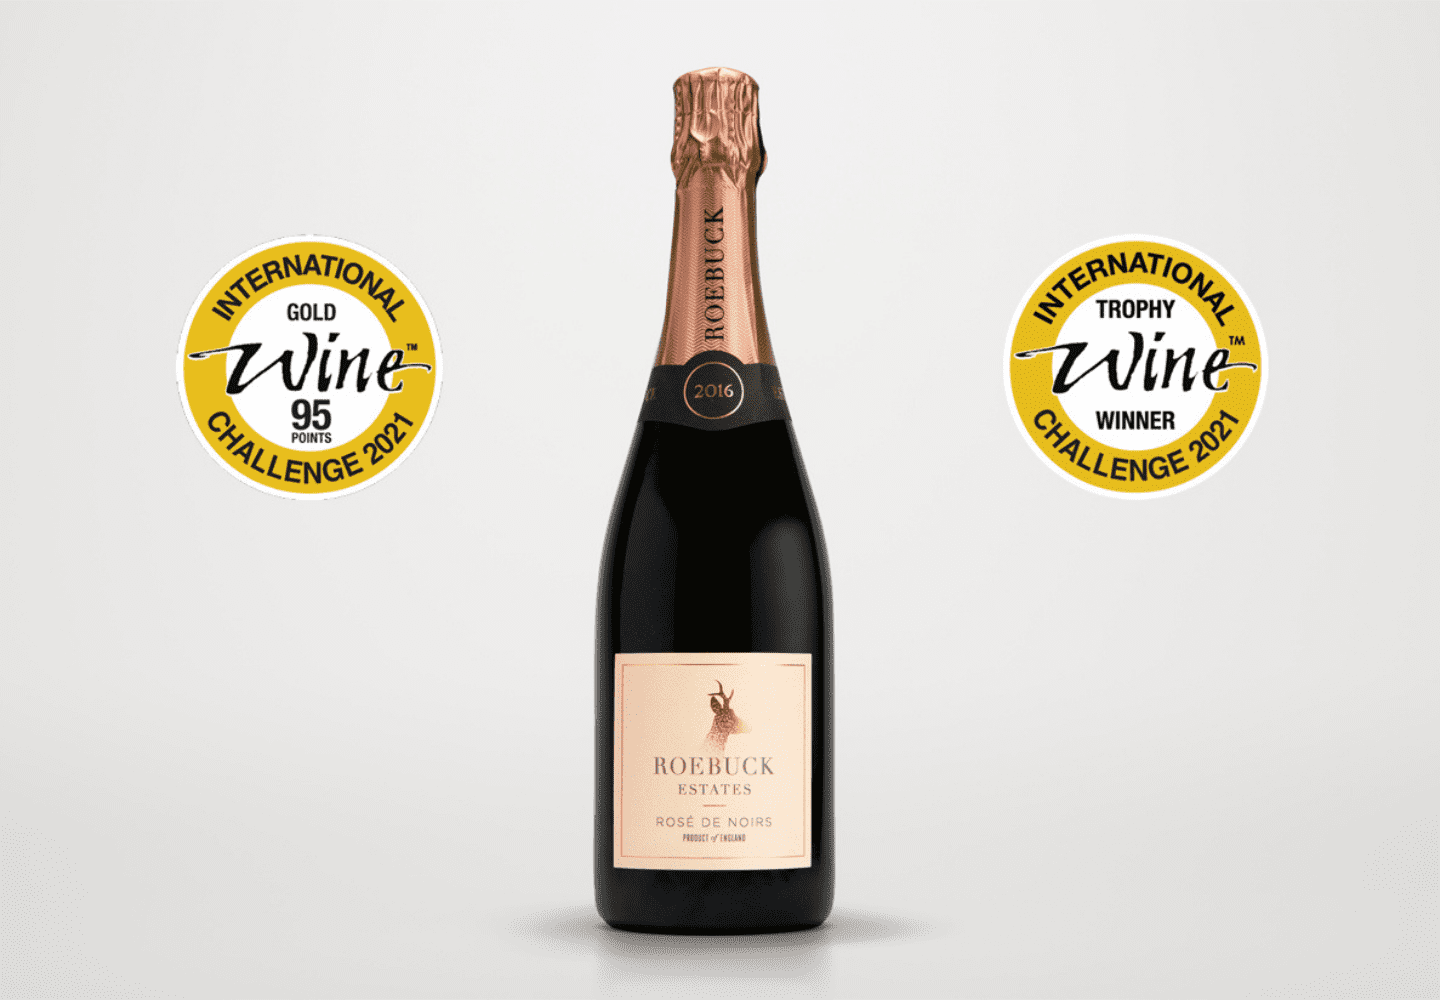 Feature_Roebuck Estates awarded a Trophy at the International Wine Challenge